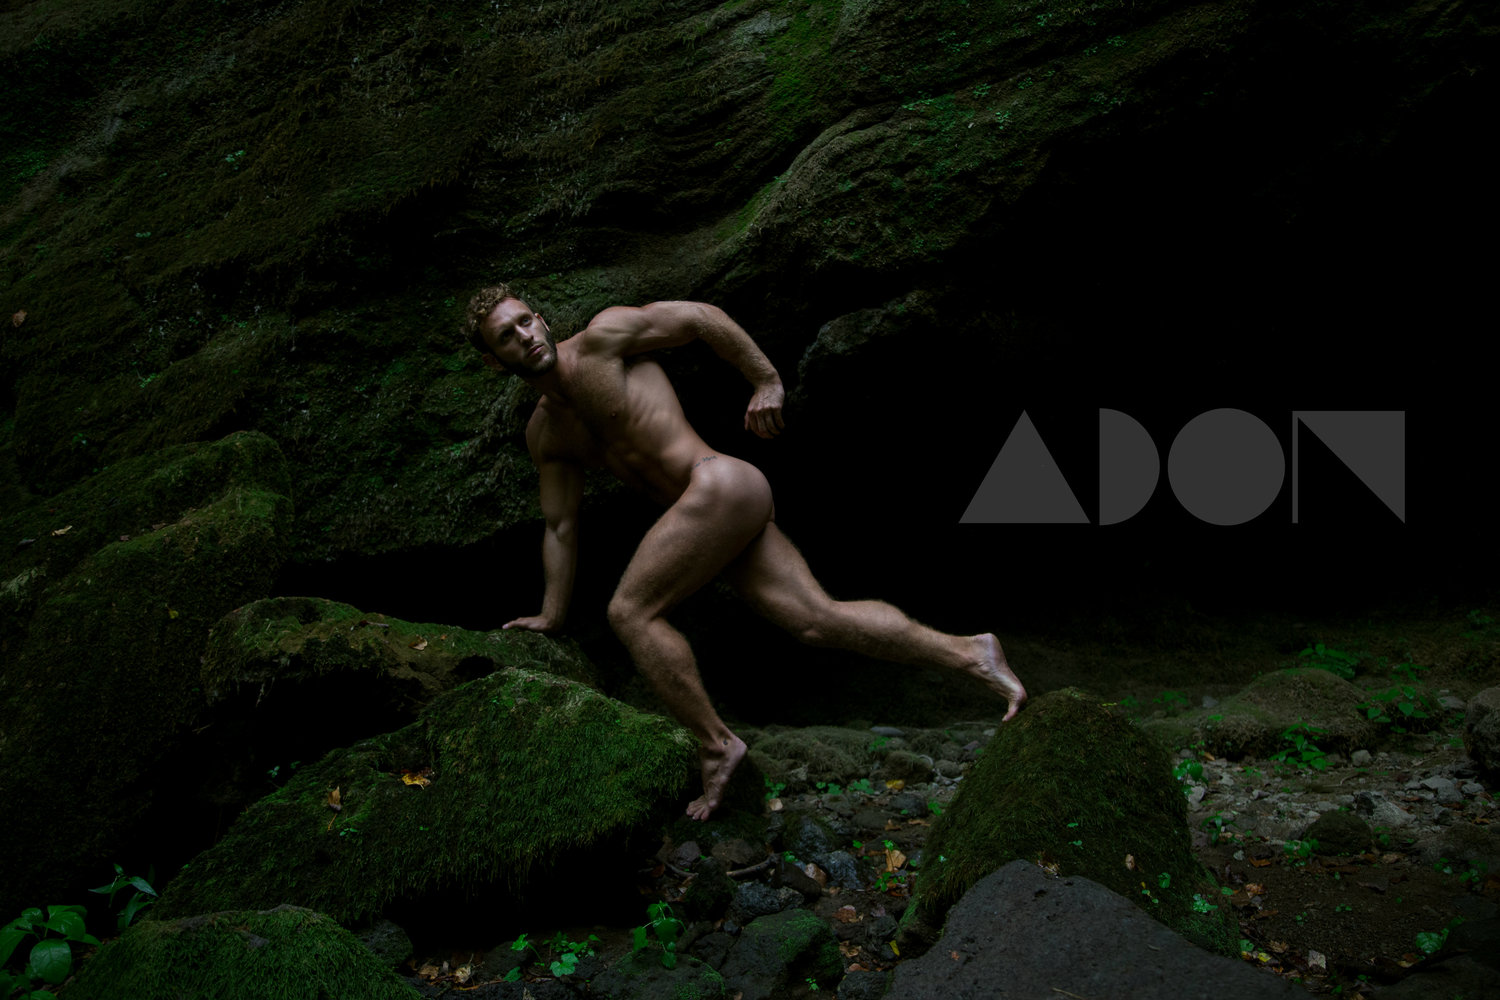 Adon Exclusive: Model Anthony Forte By Vicro Berto